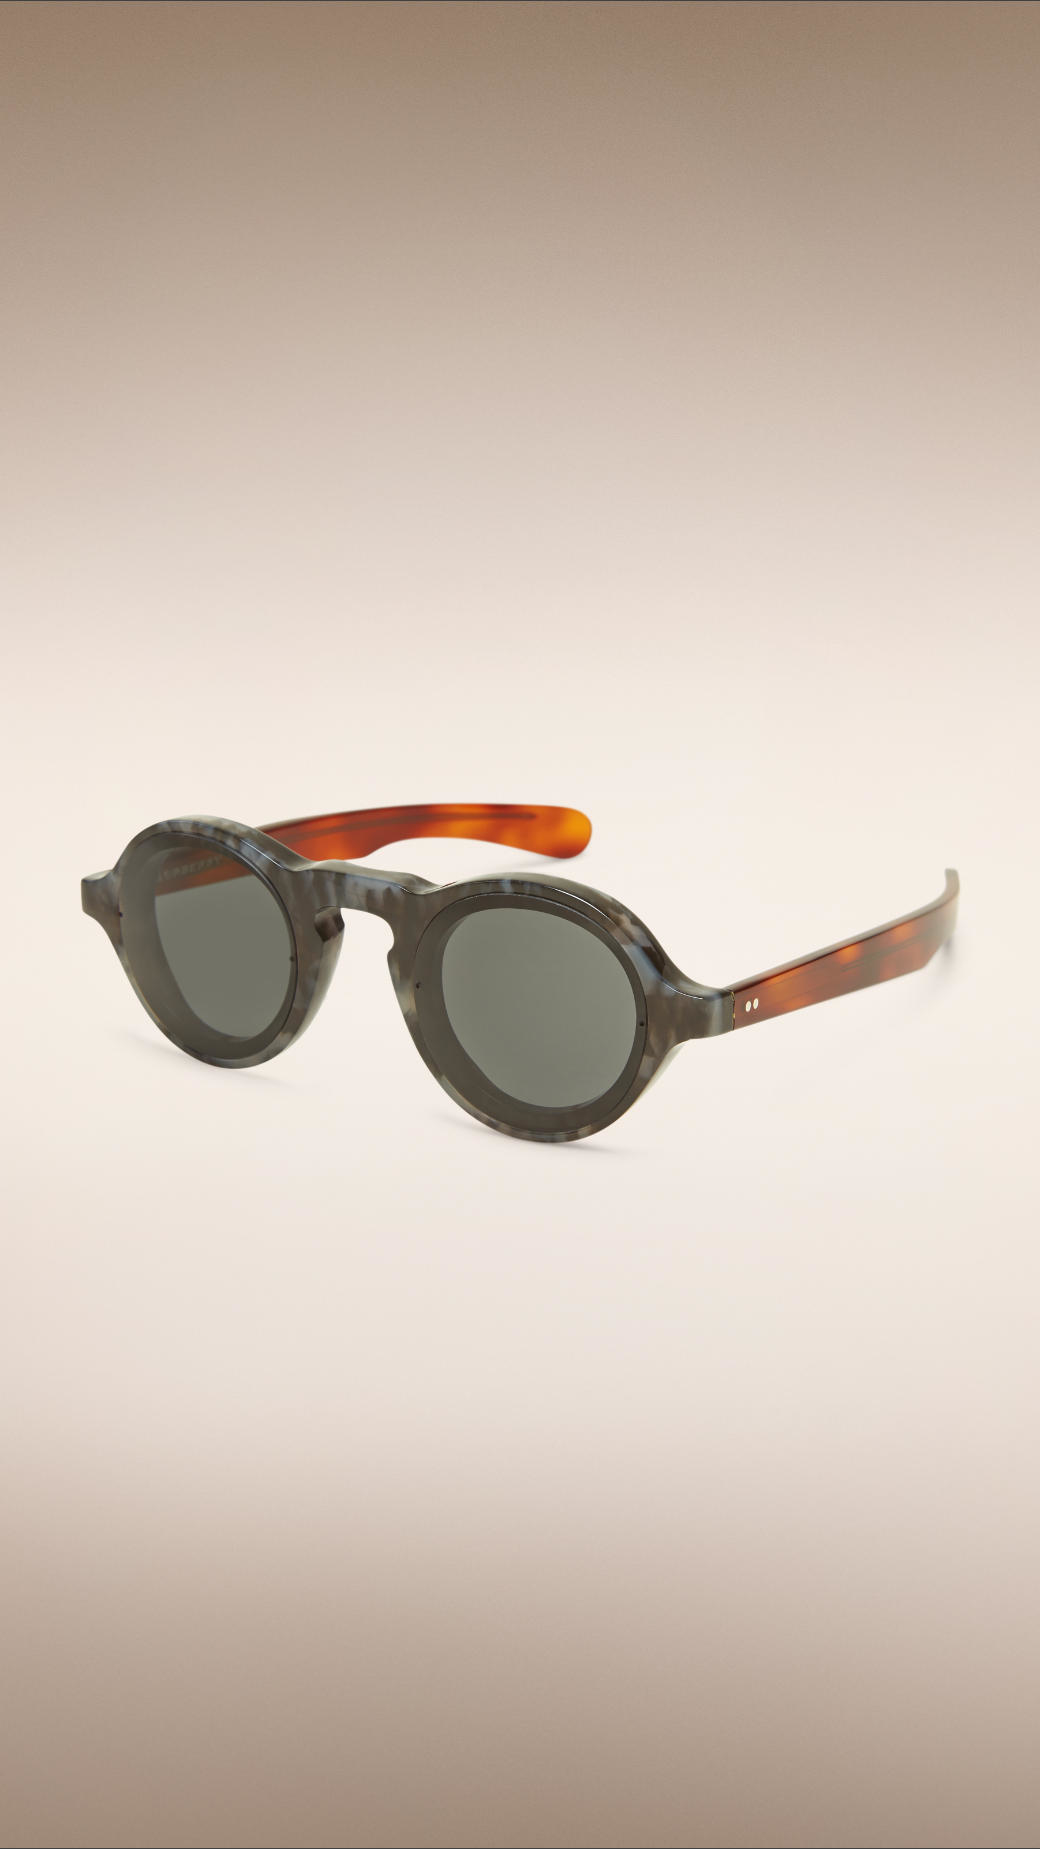 Burberry Colour Block Round Frame Sunglasses in Grey (Grey)